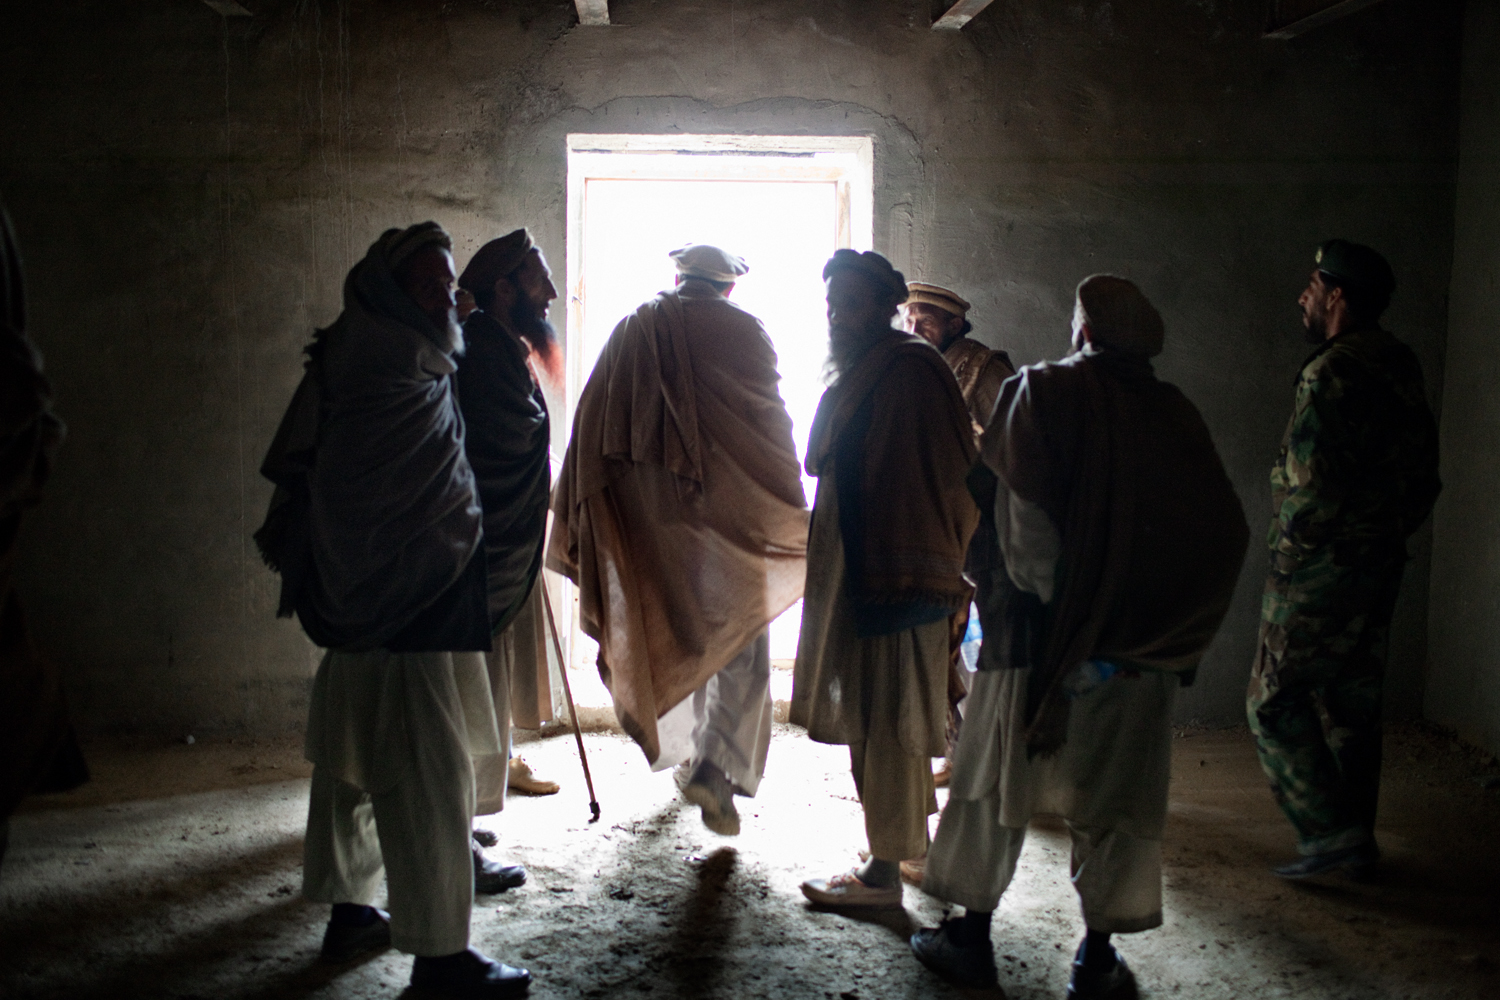 Village elders leave a meeting with U.S. Army soldiers after seeking compensation for battle damage and the release of a detained local, at the Korengal Outpost, Kunar Province, Afghanistan.